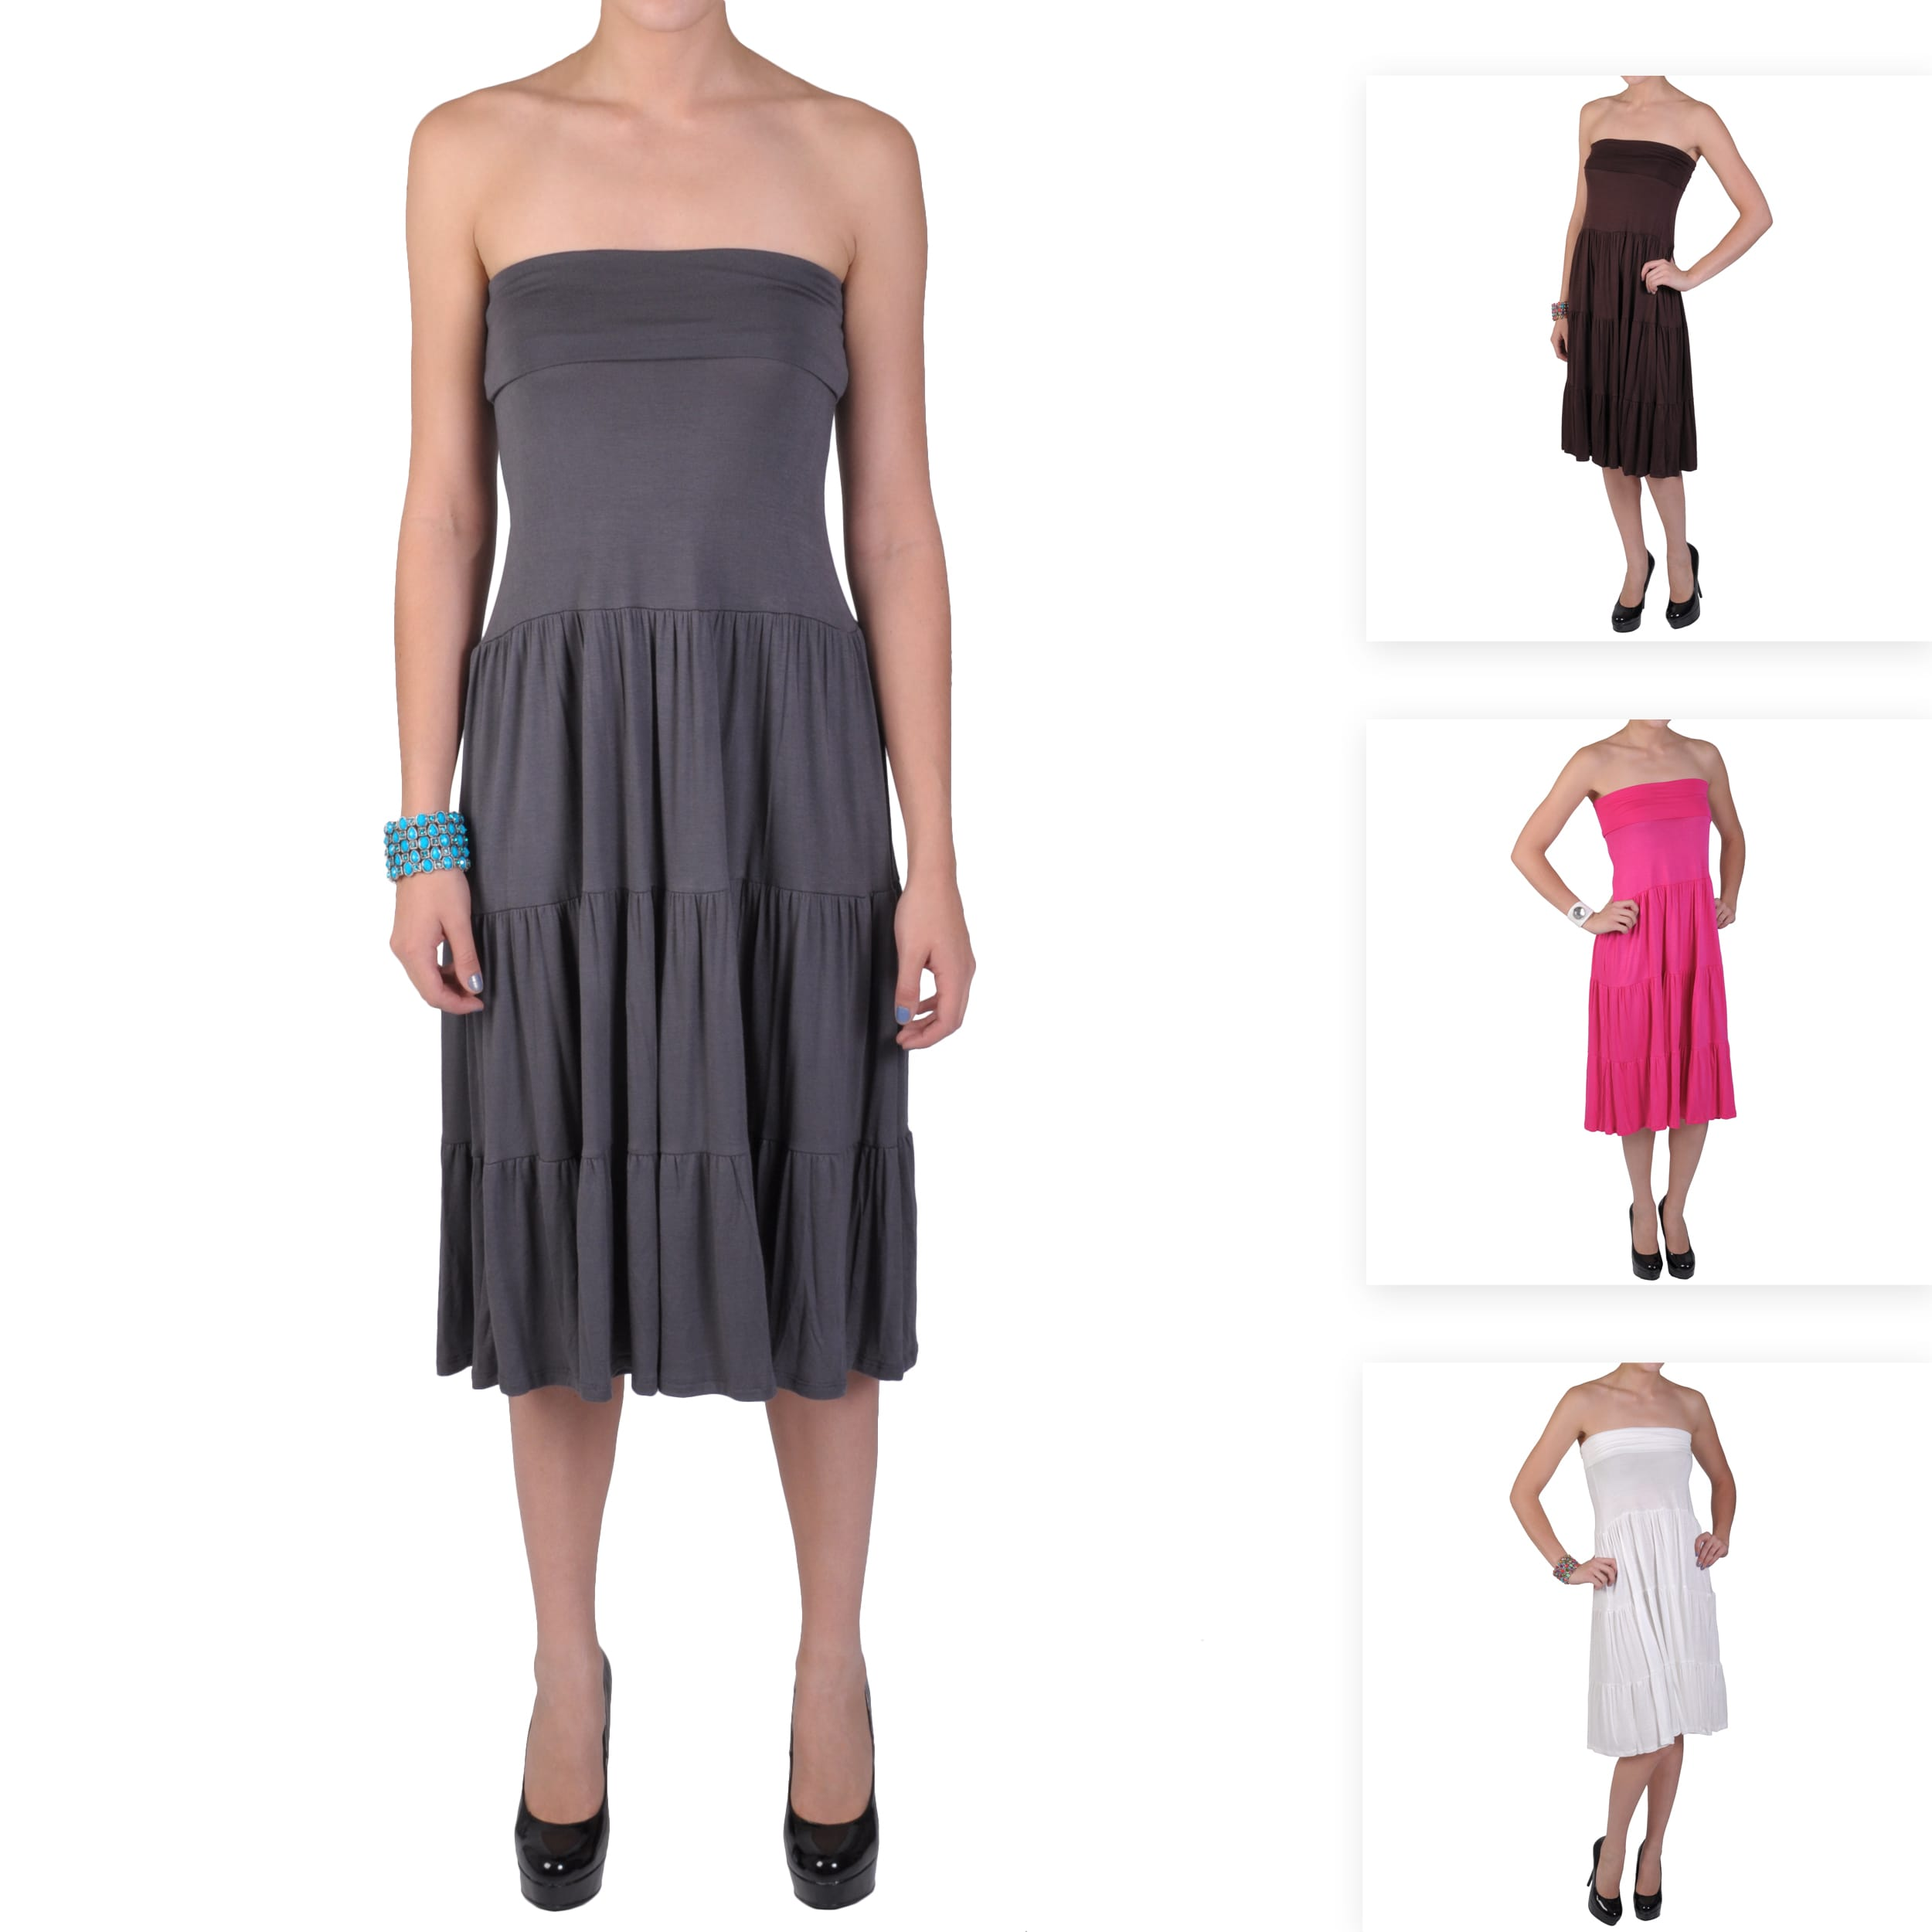 Journee Collection Juniors Long Tiered Skirt dress Today $20.99   $25